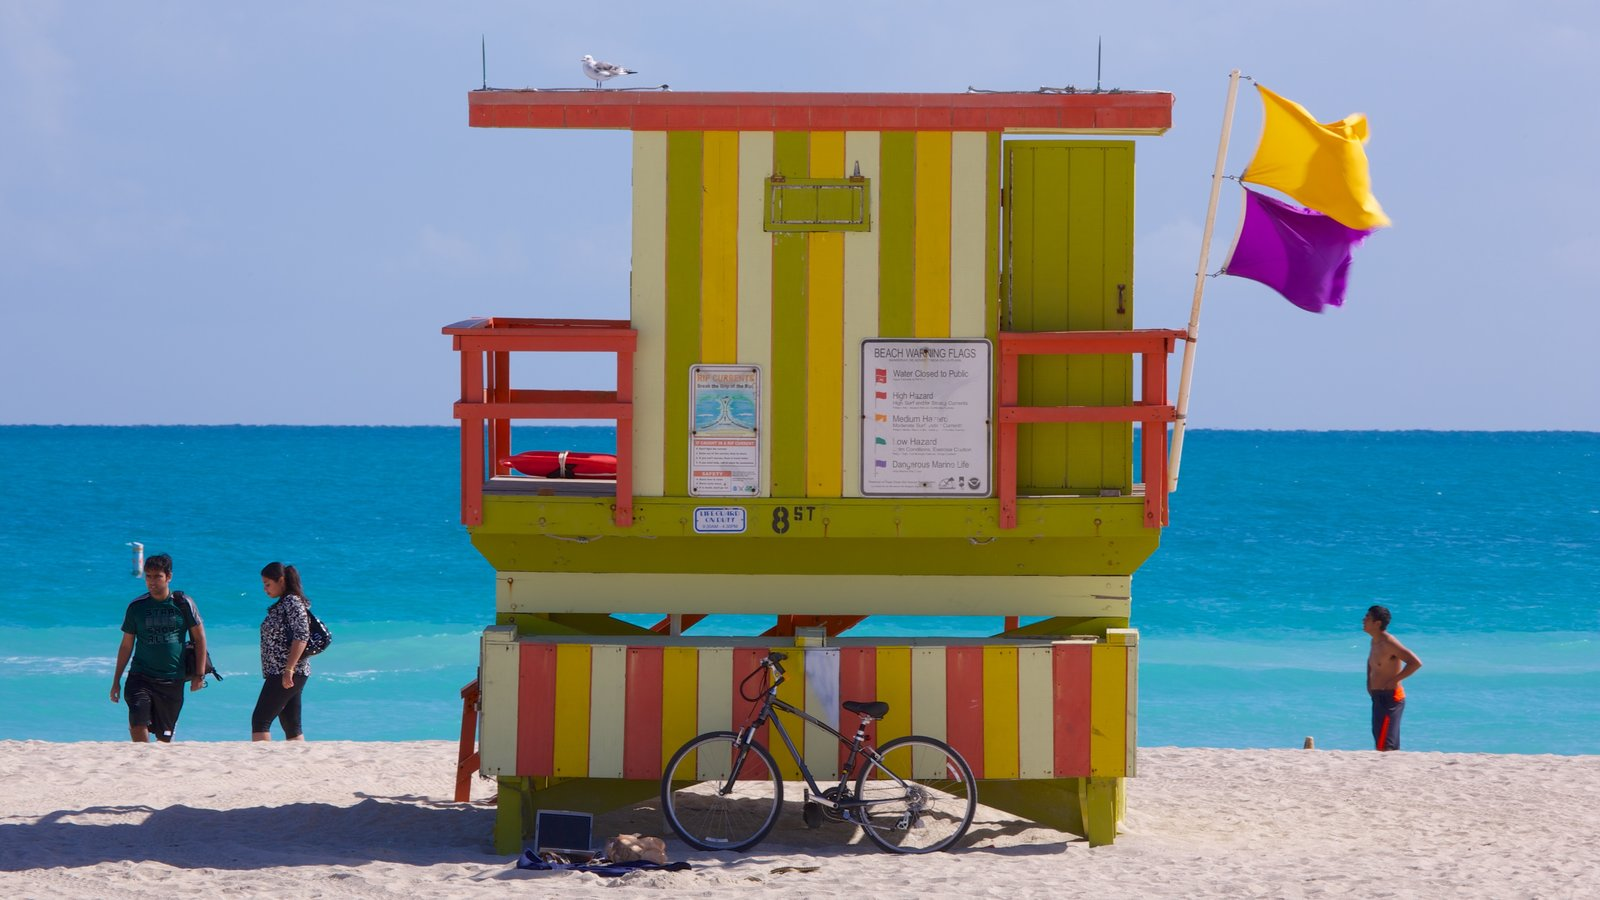 Miami Beach which includes tropical scenes, a sandy beach and landscape views